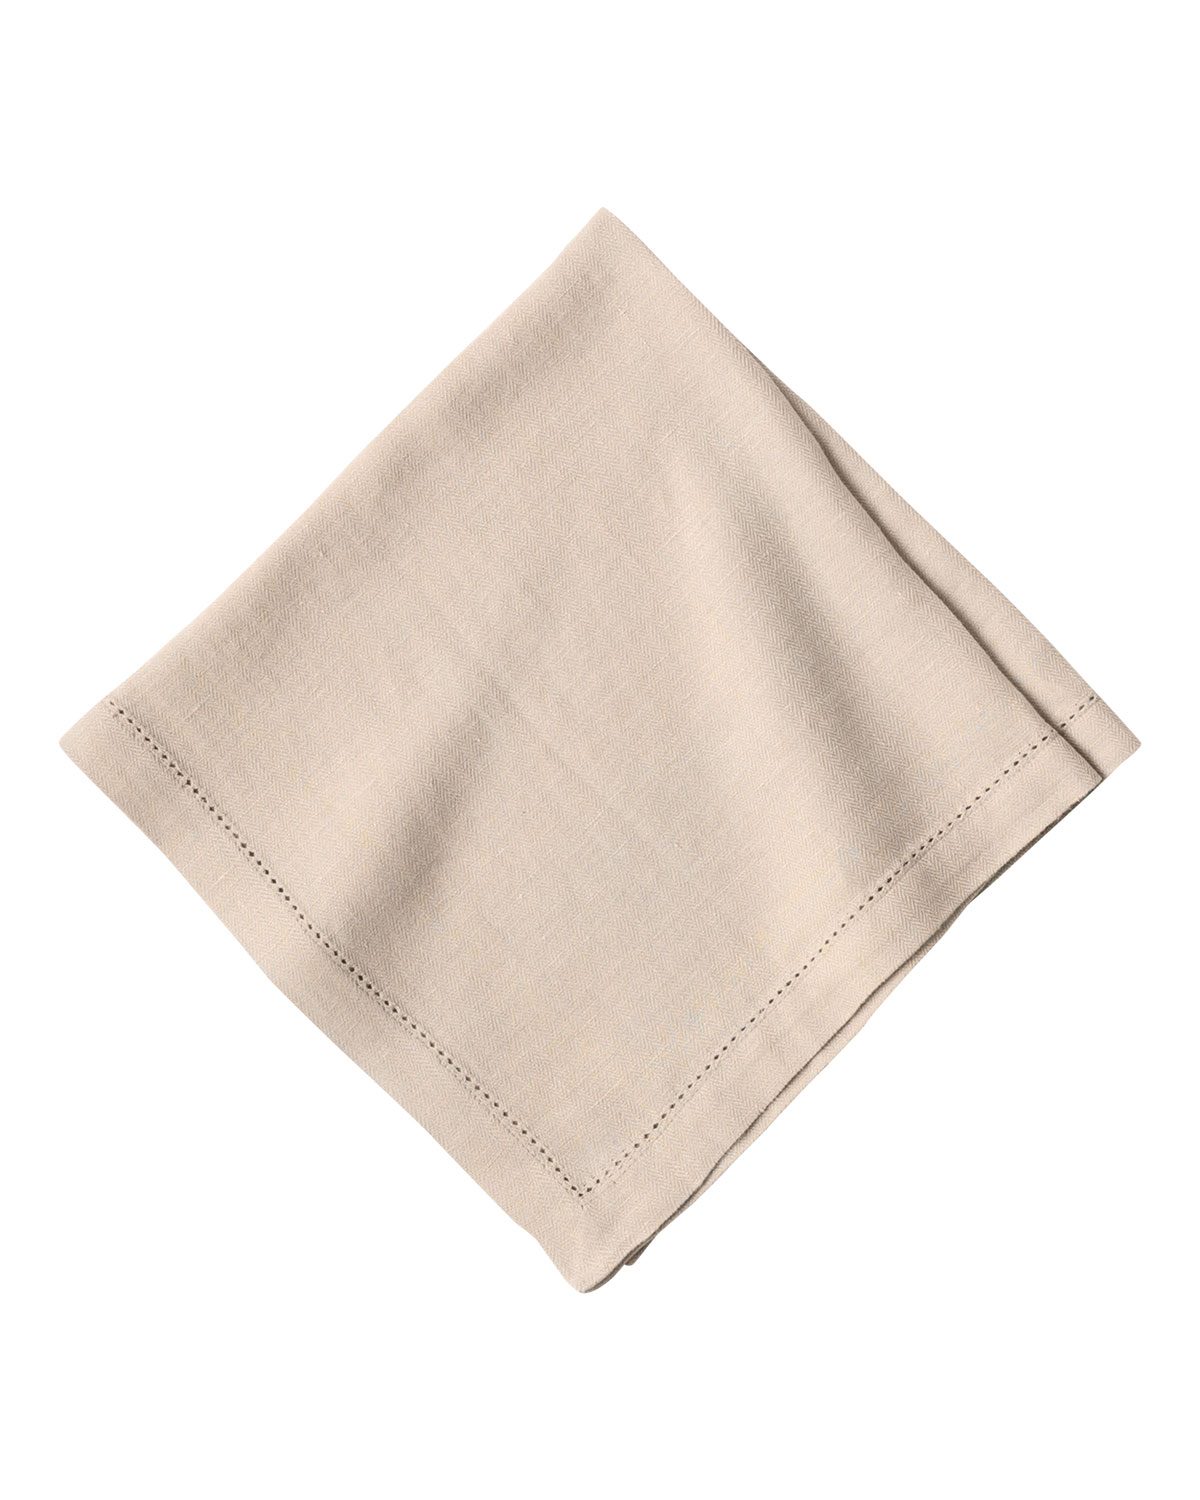 Heirloom Linen Napkin, Flax